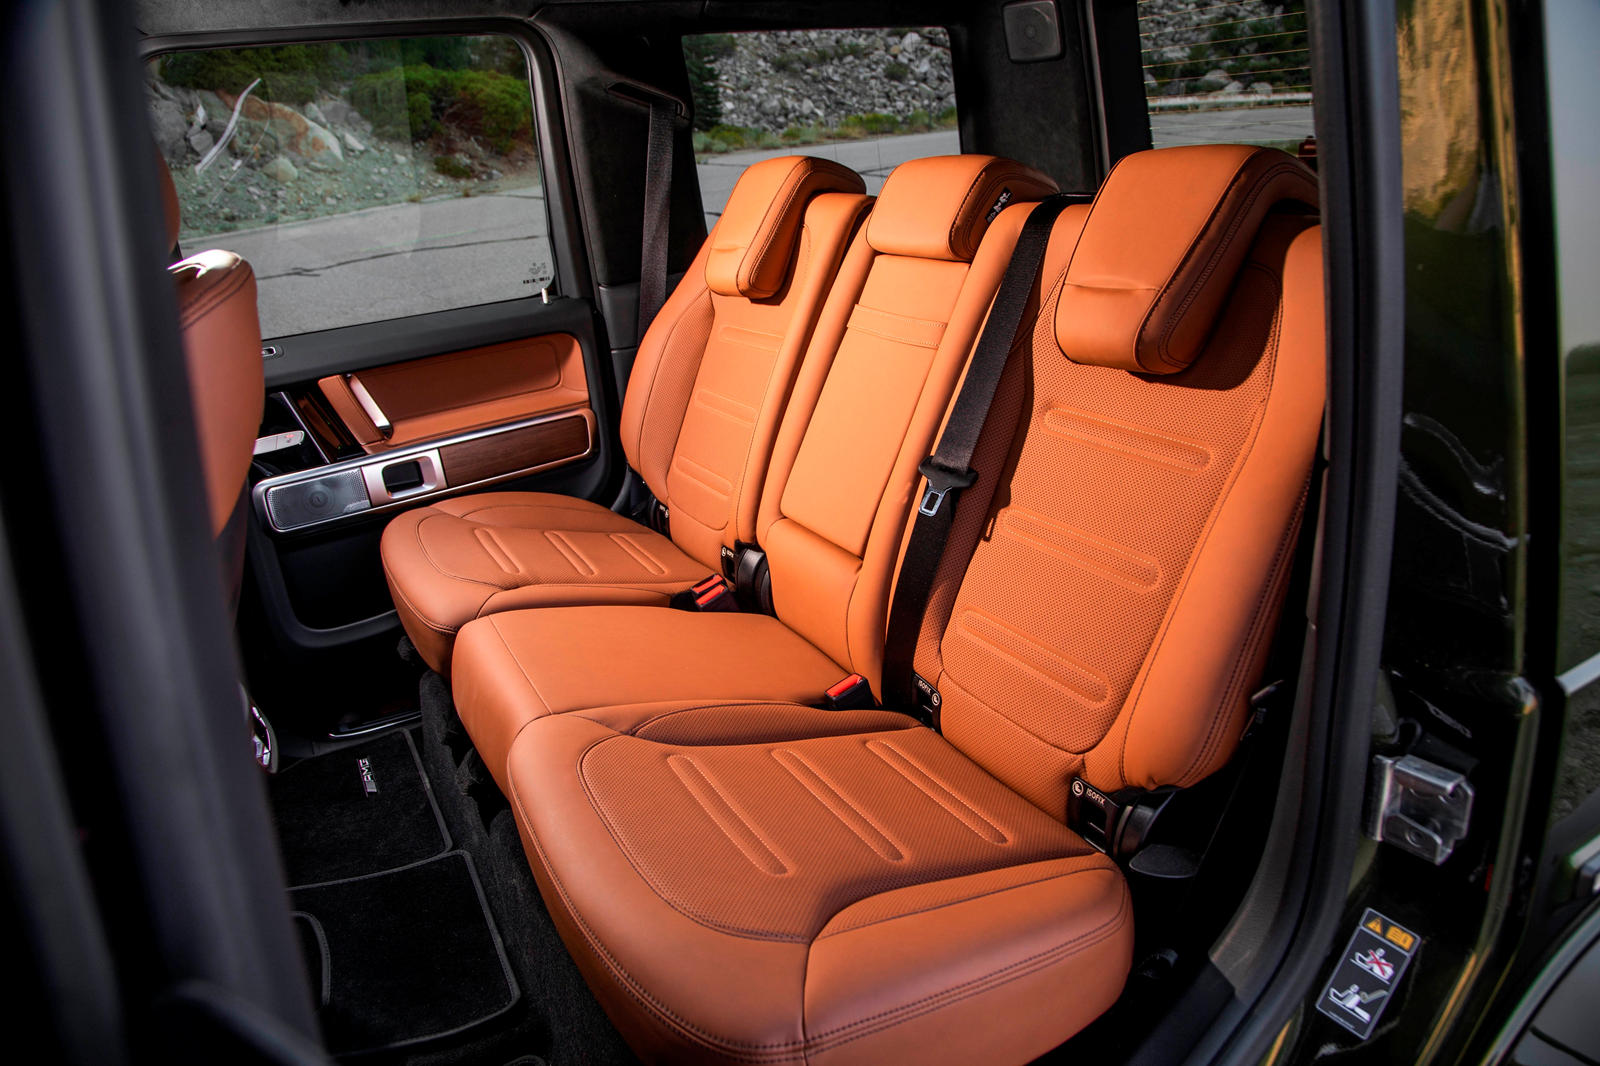 Mercedes G-Class Nappa leather upholstery